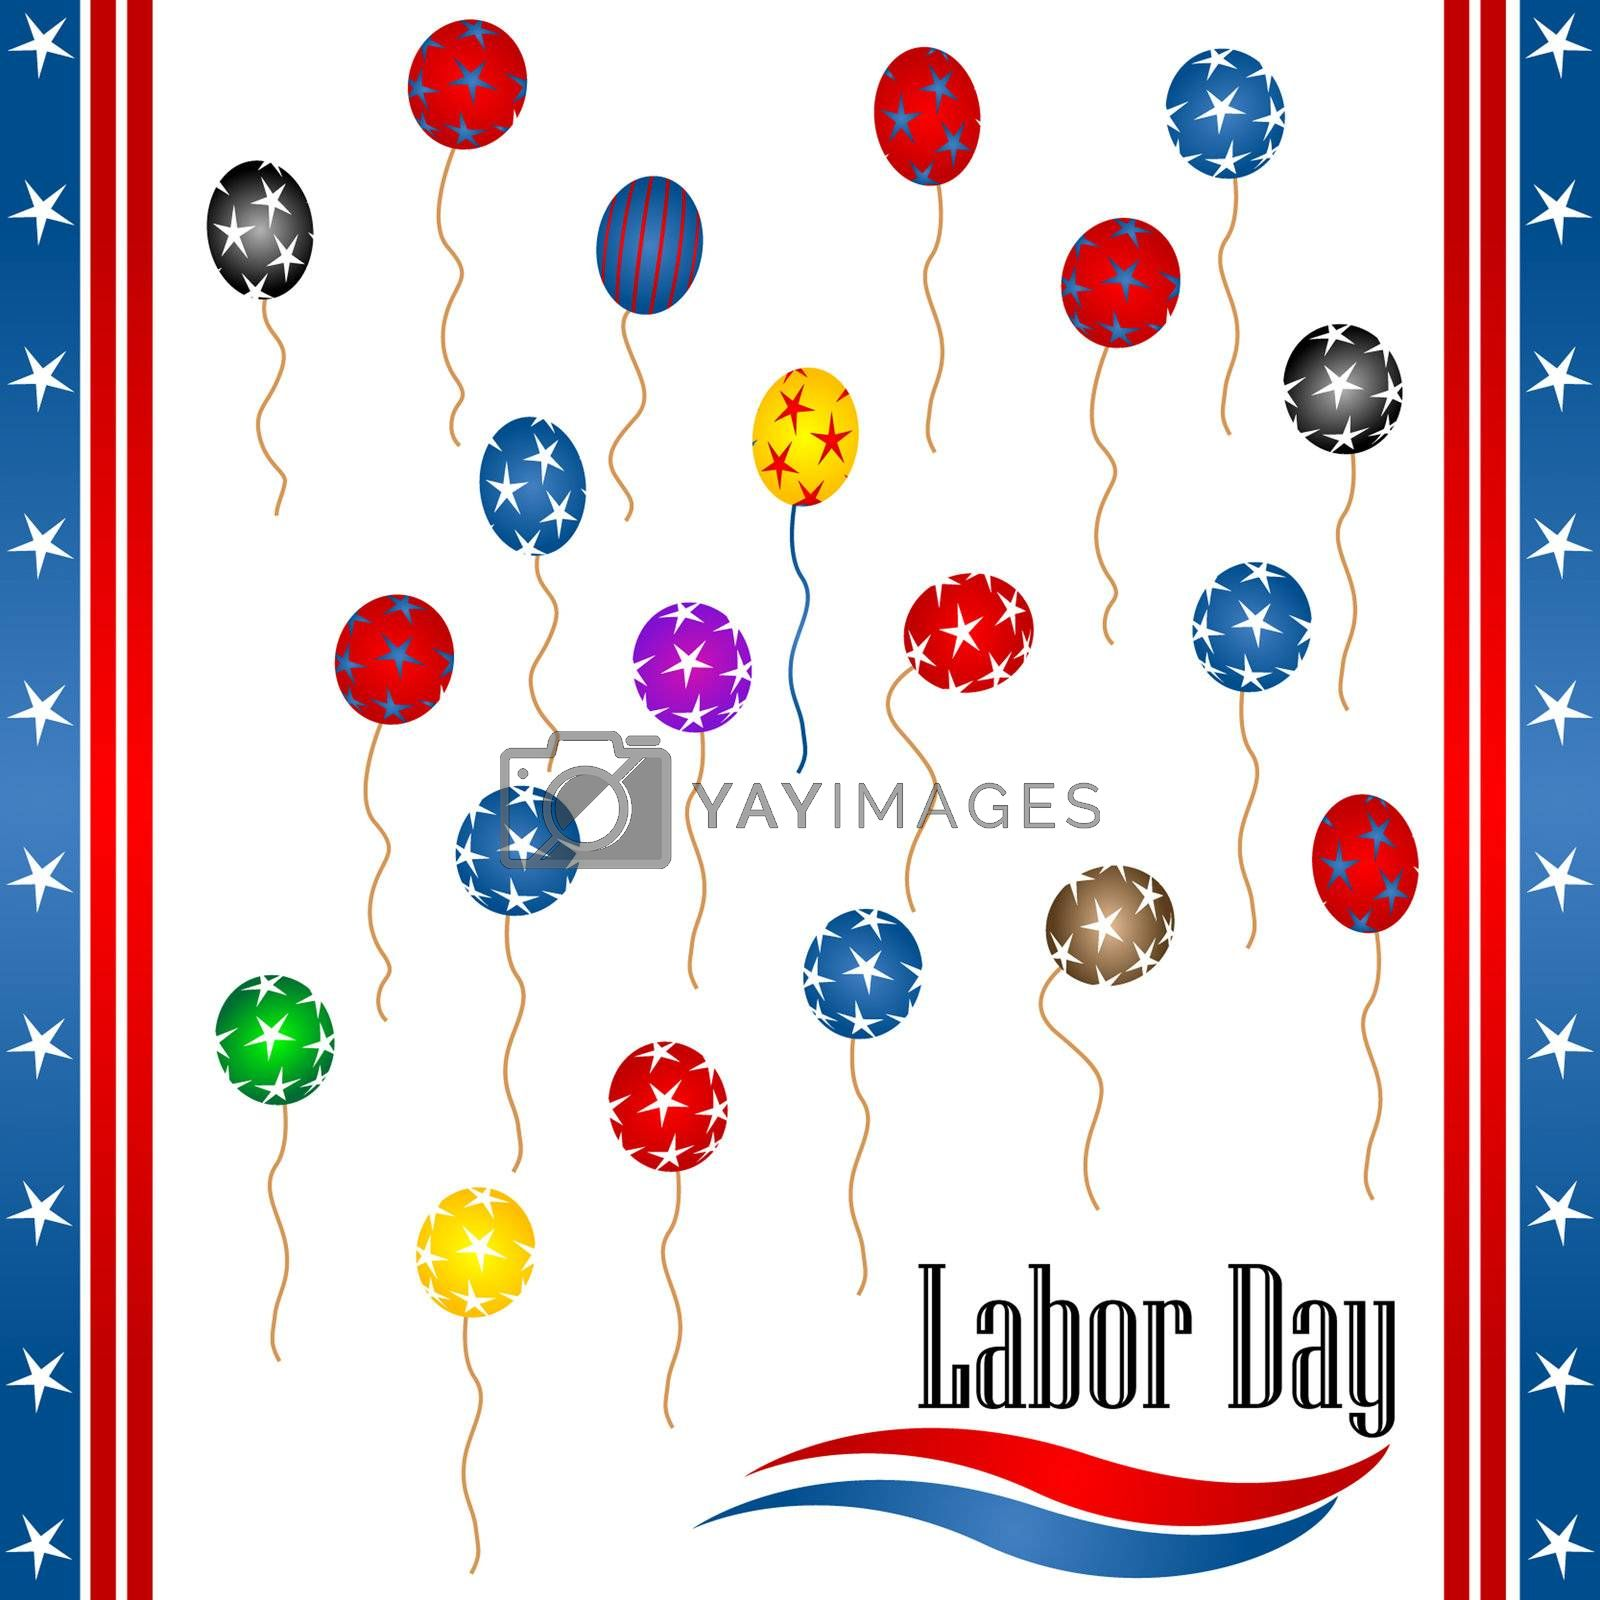 Labor day by Lirch